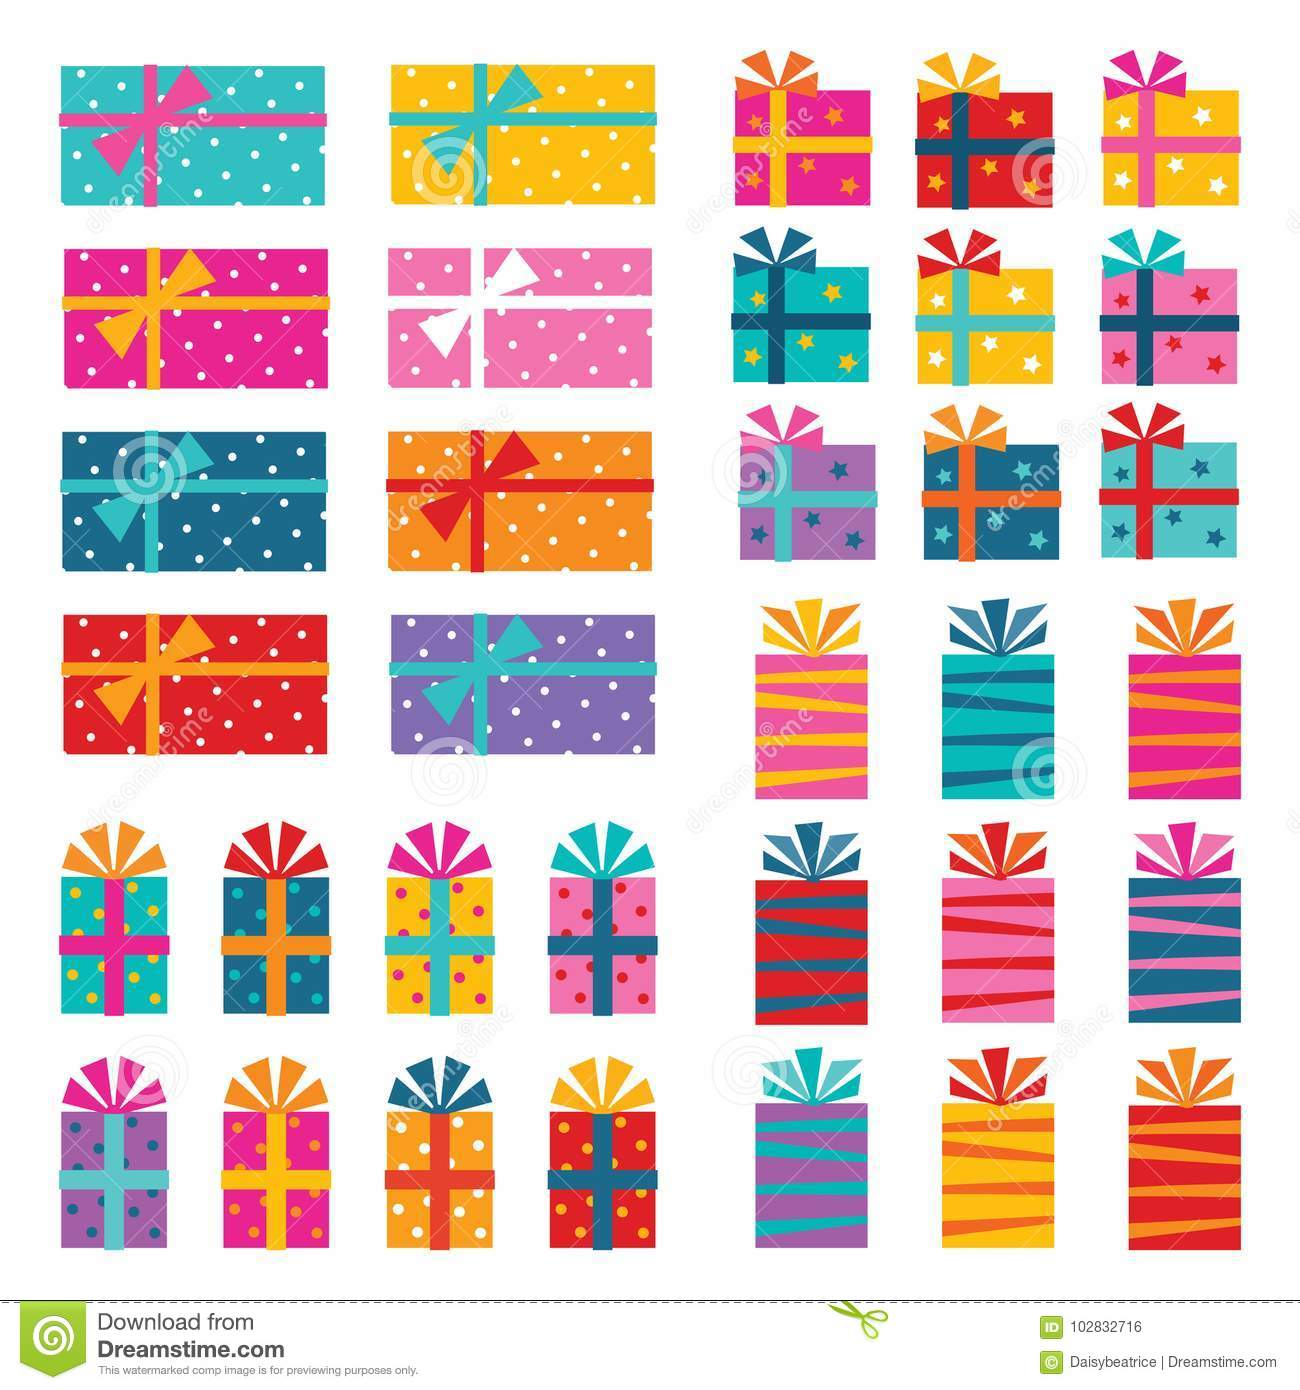 Illustrated set of colorful gift wrapped presents isolated on white